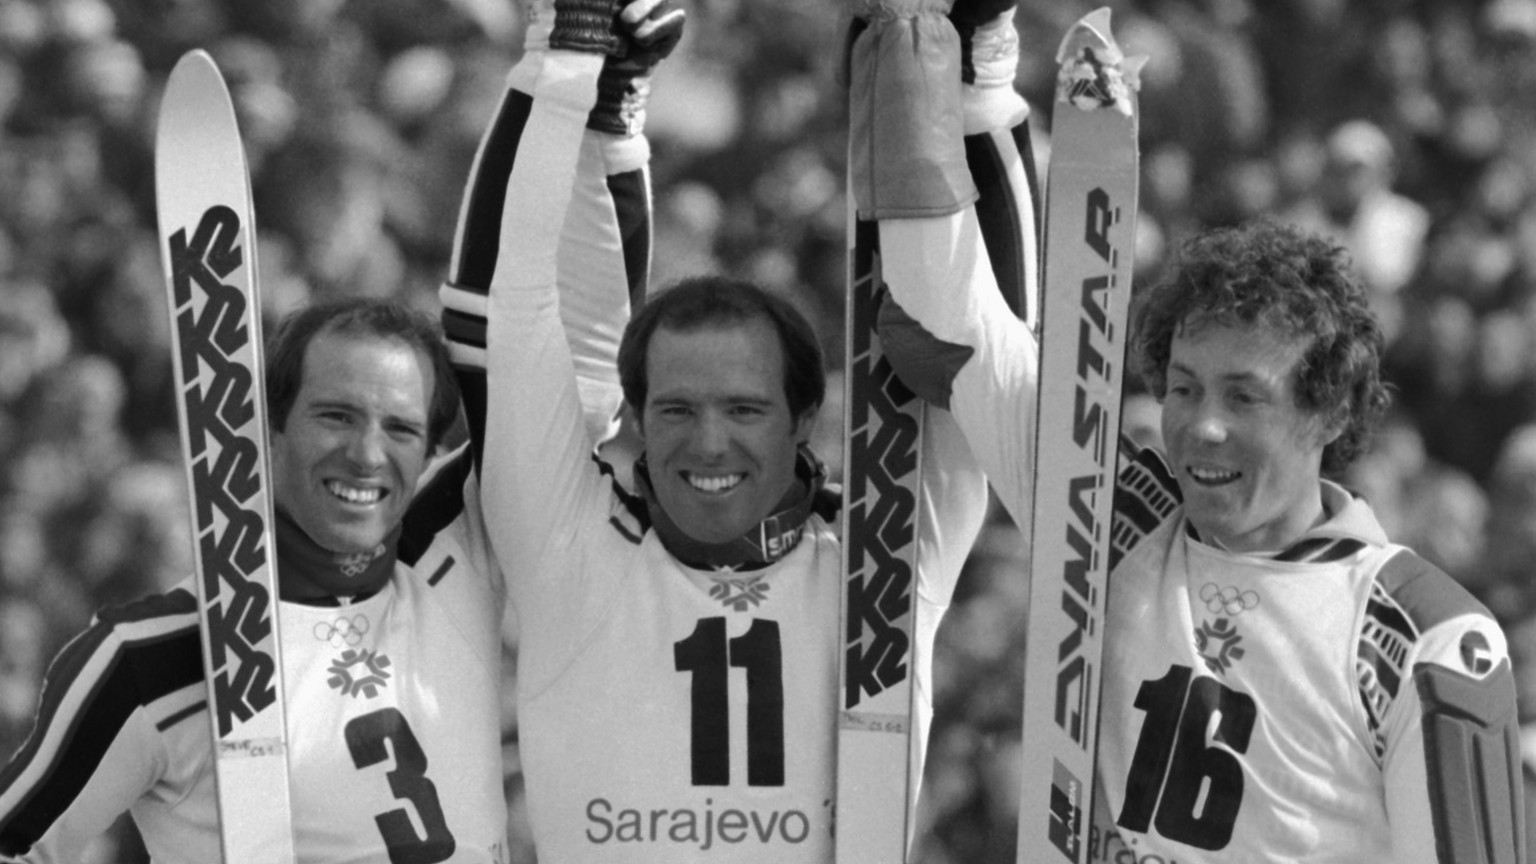 Phil Mahre (11) stands with his brother Steve (3) and Didier Bouvet (16) of France after the XIV Winter Olympics slalom on Mt. Bjelasnica in Sarajevo, Feb. 19, 1984. Americans Phil and Steve took top honors with Phil winning and gold and Steve, silver. Bouvet took the bronze medal. (AP Photo/Jack Smith)